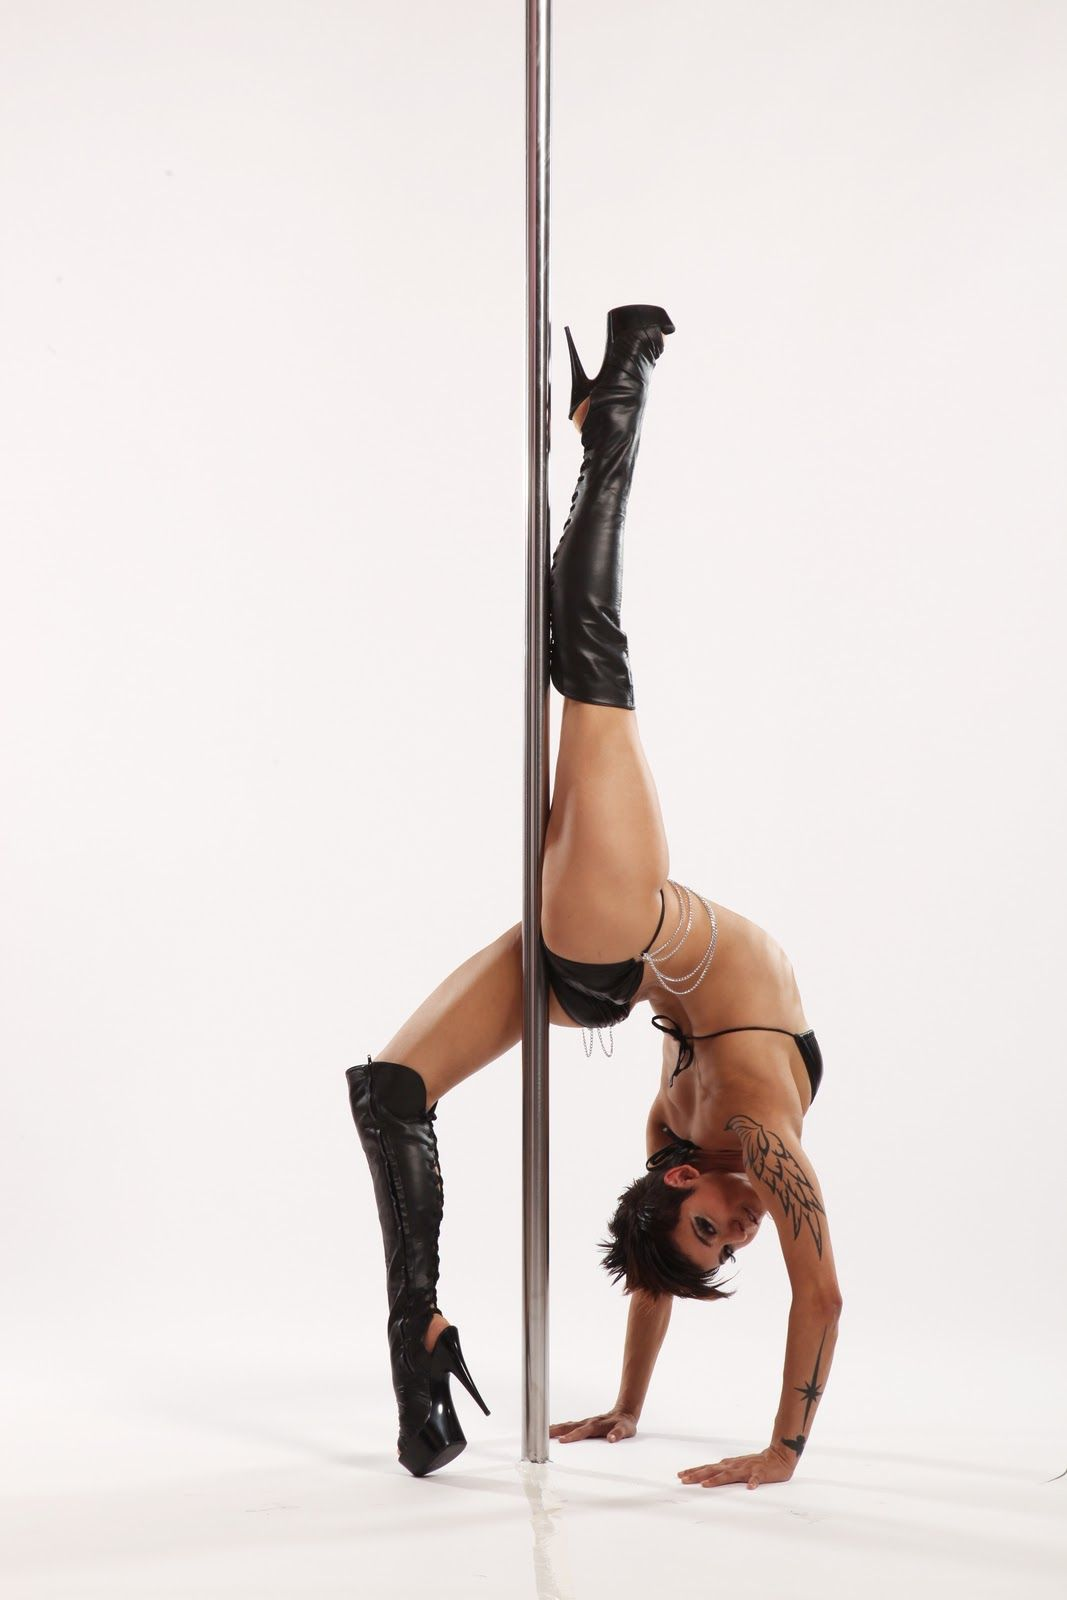 Stripper pole workout